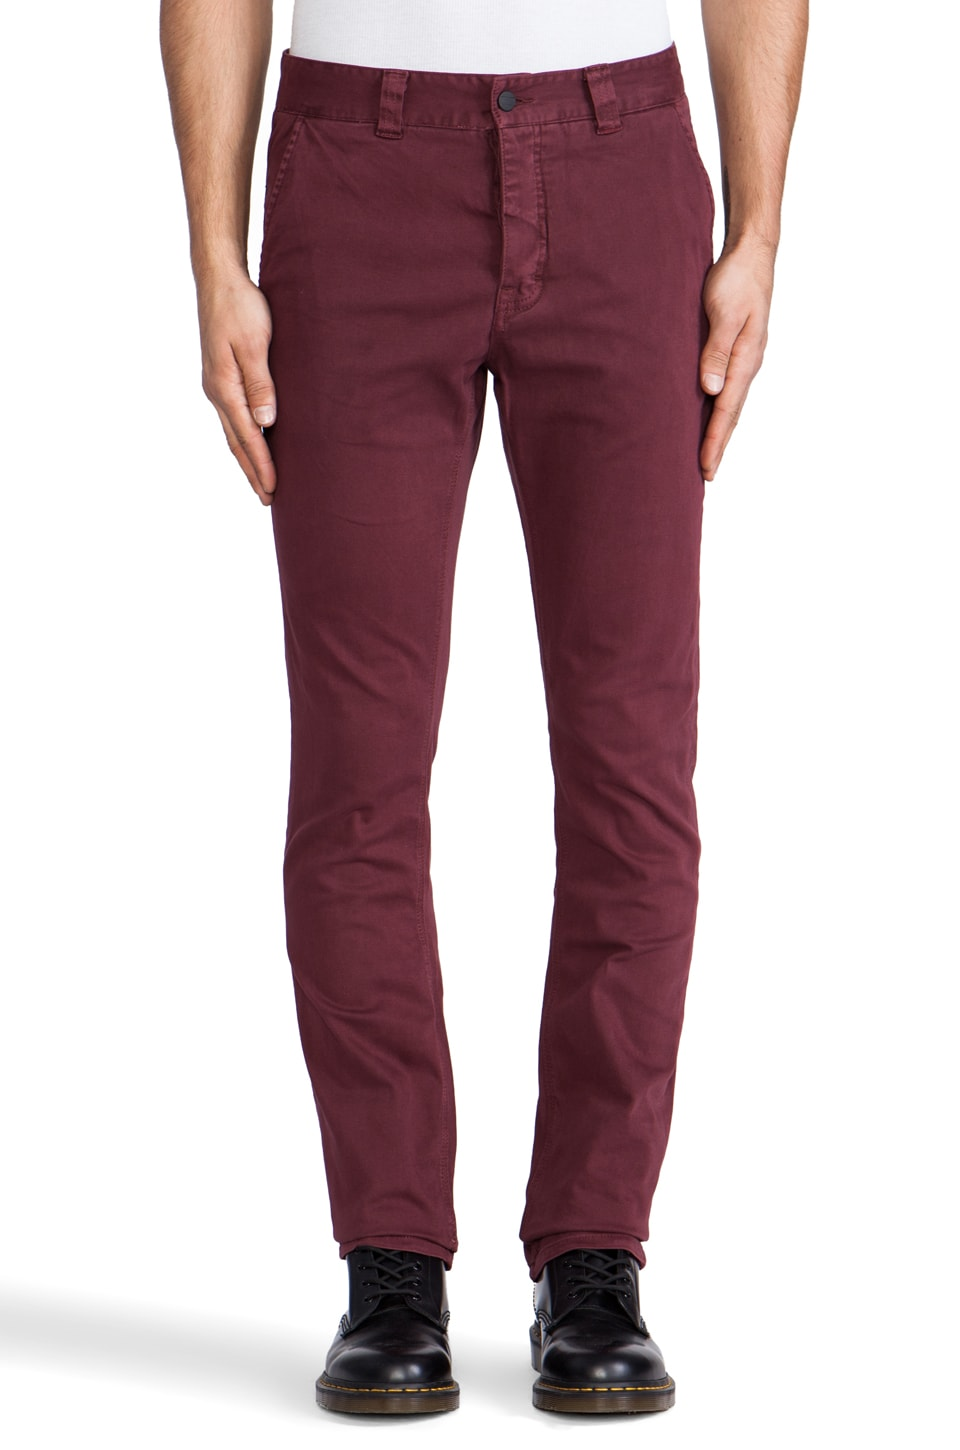 COMUNE Raul Chino Pants in Oxblood